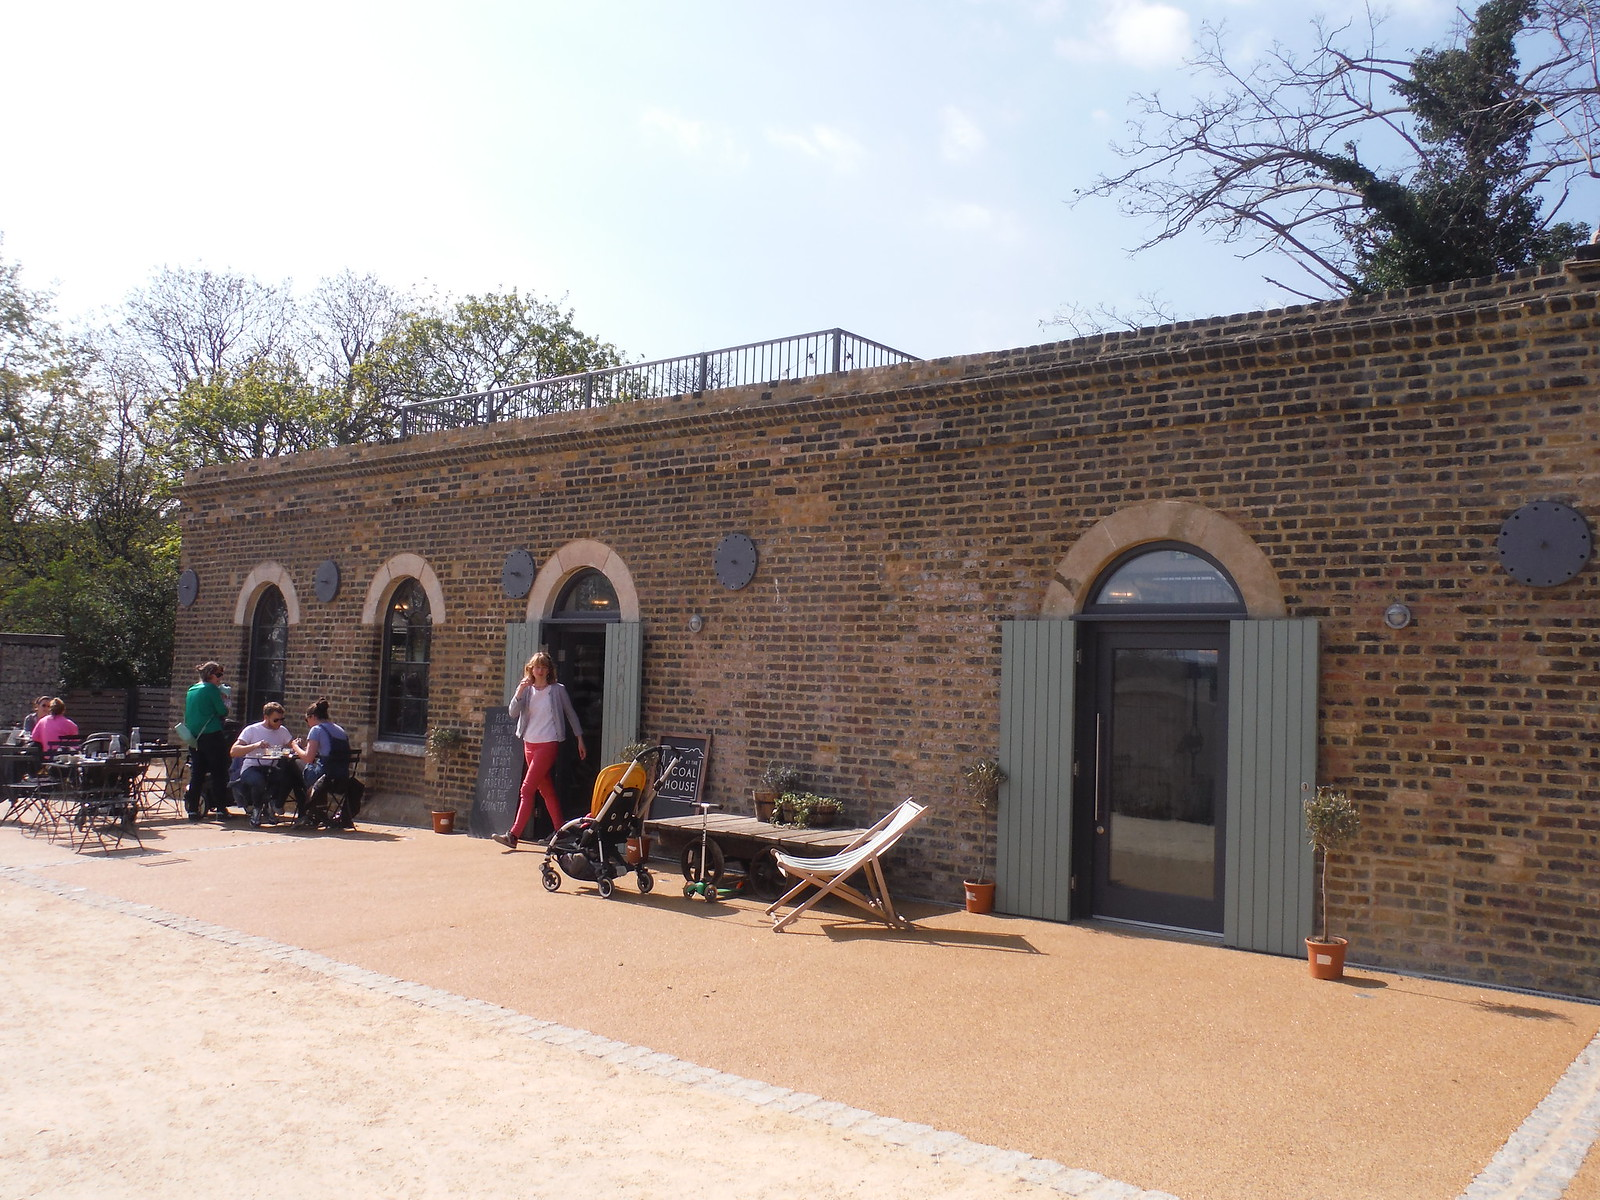 Lizzy's at the Coal House, Woodberry Wetlands SWC Short Walk 26 - Woodberry Wetlands (Stoke Newington Reservoirs)